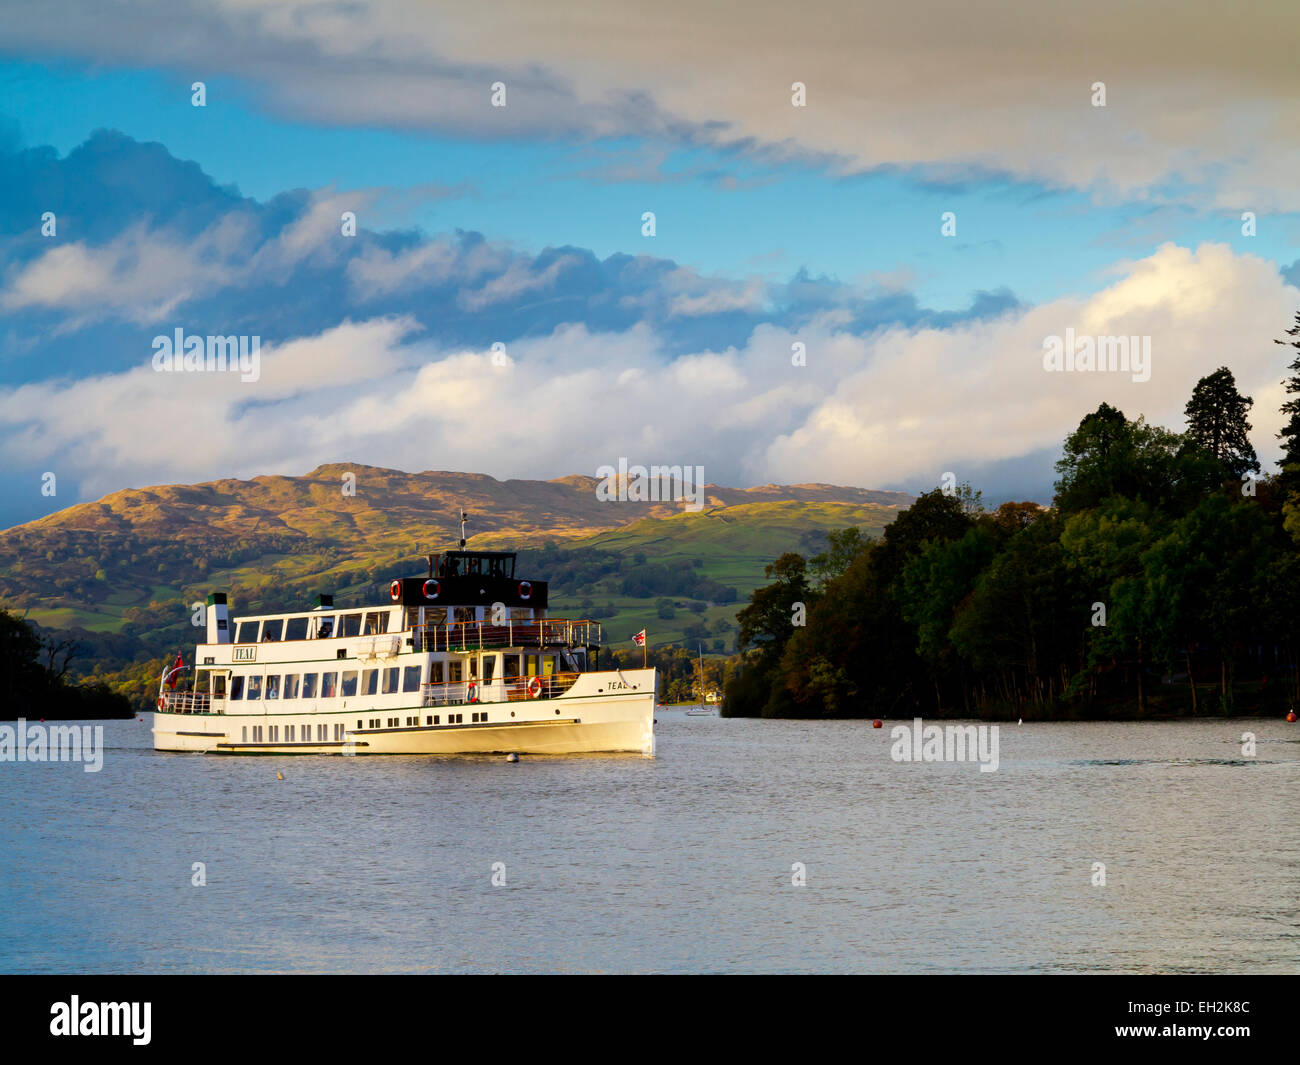 Passenger boat MV Teal sailing across Lake Windermere in the Lake District National Park with view of mountains - Stock Image